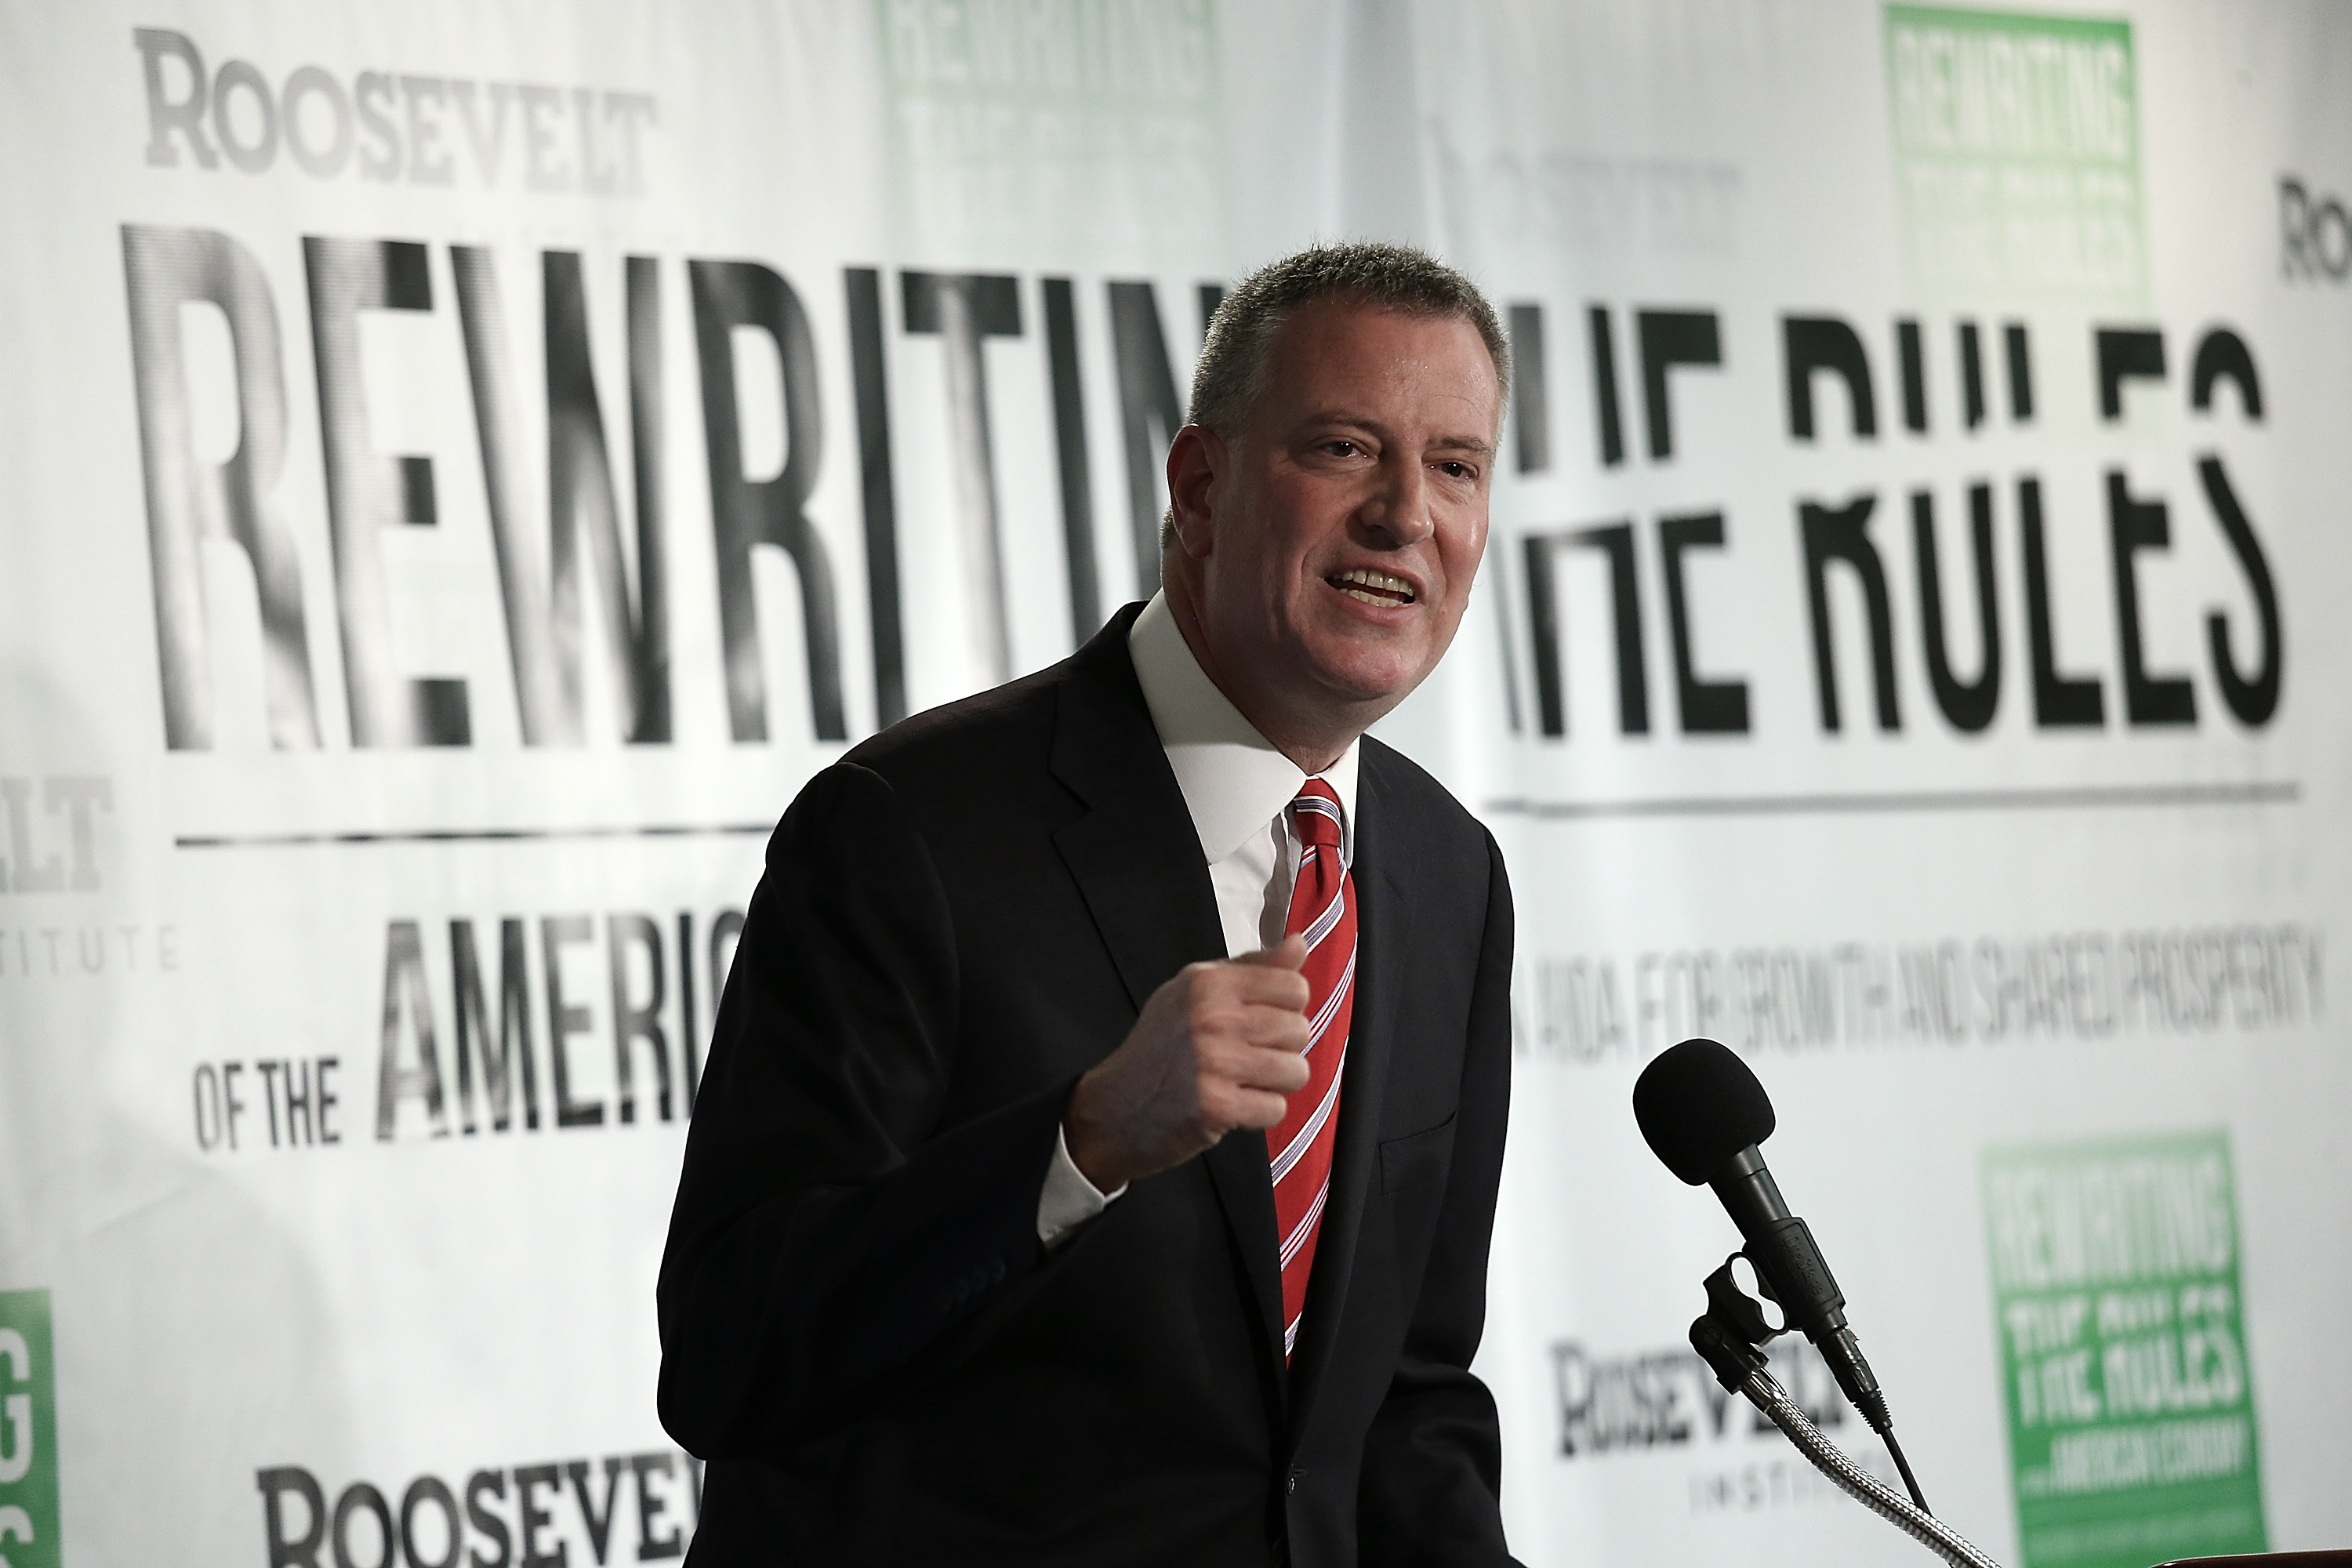 New York City Mayor Bill de Blasio speaks about the release of a new report authored by Nobel-prize winning economist Joseph Stiglitz published by the Roosevelt Institute. (Win McNamee/Getty Images)